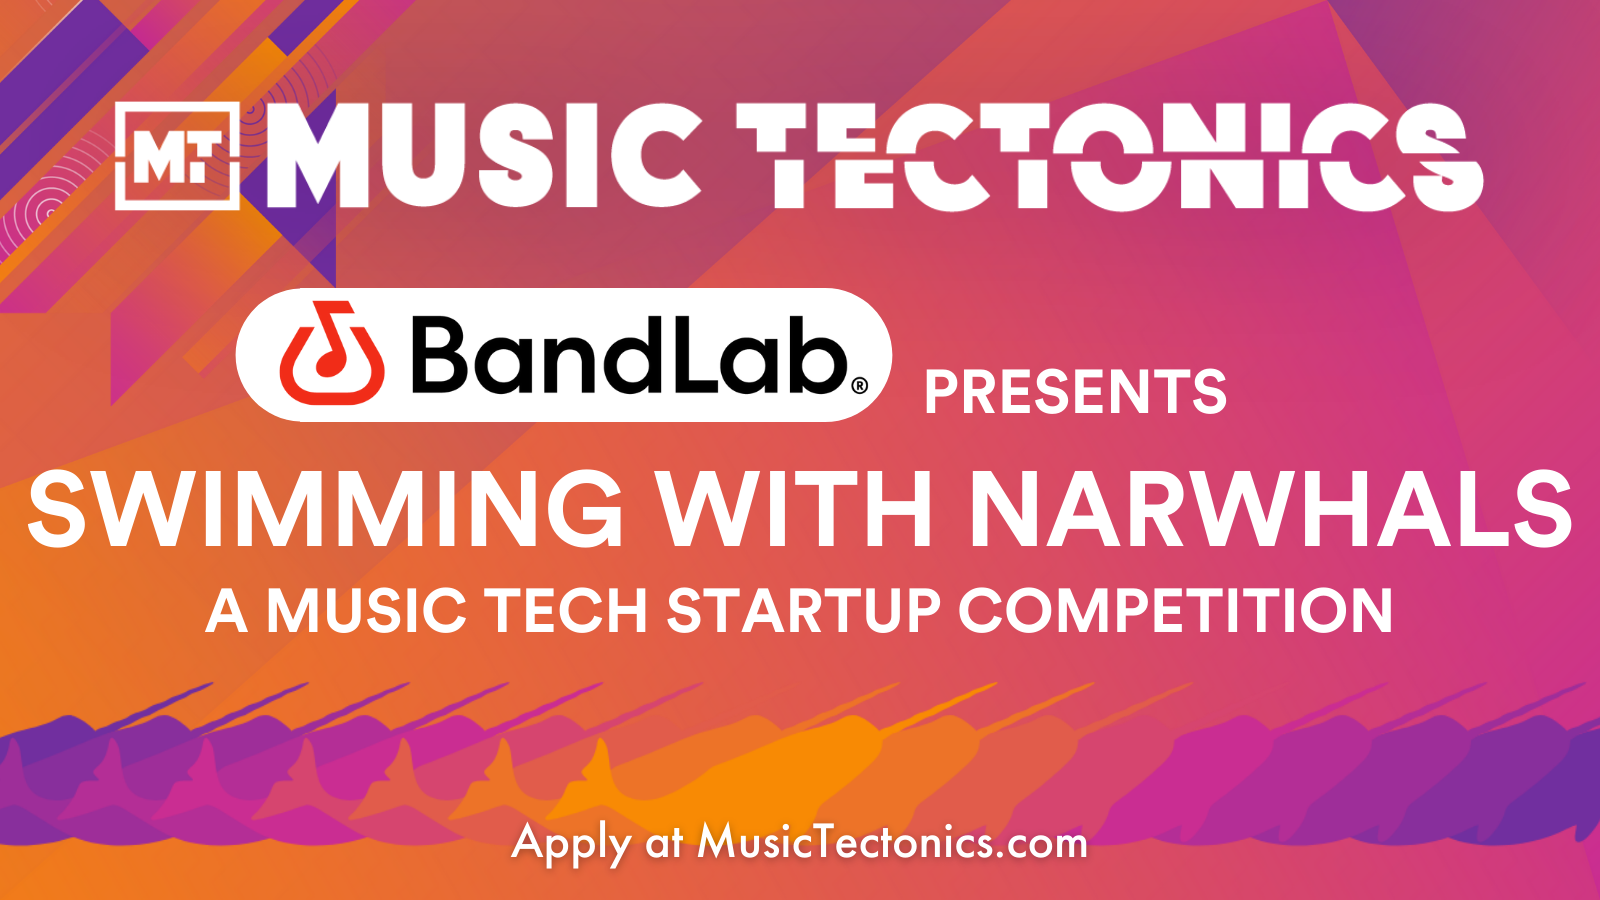 BandLab Teams Up with Music Tectonics to Spot the Next Hot Music Tech Startups